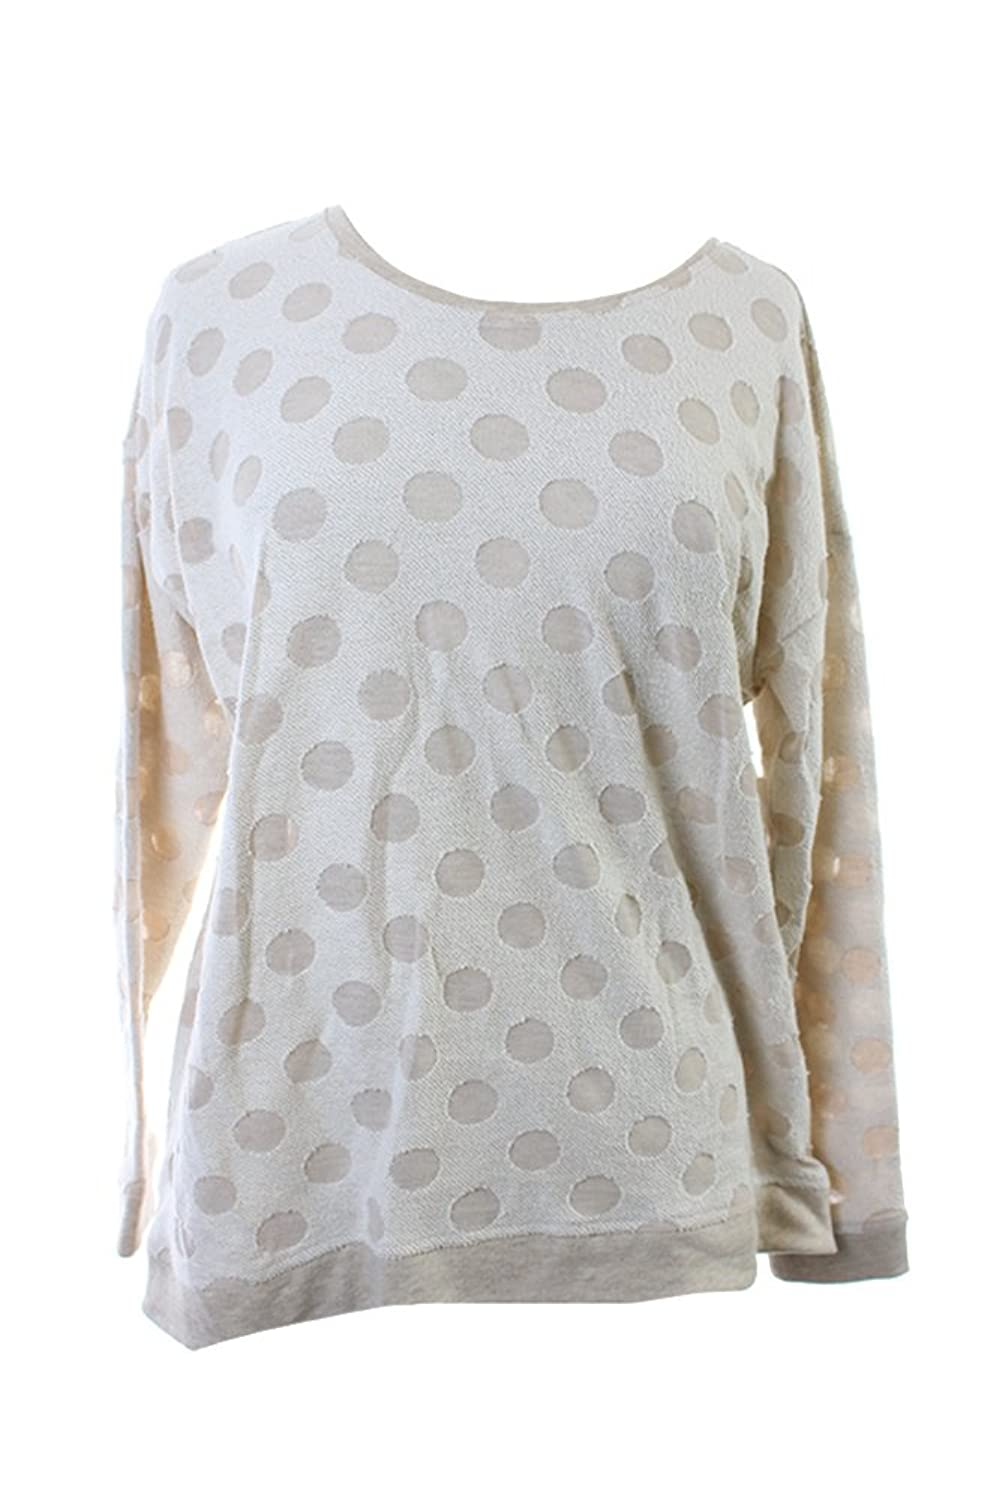 Kensie Womens French Terry Polka Dot Casual Top